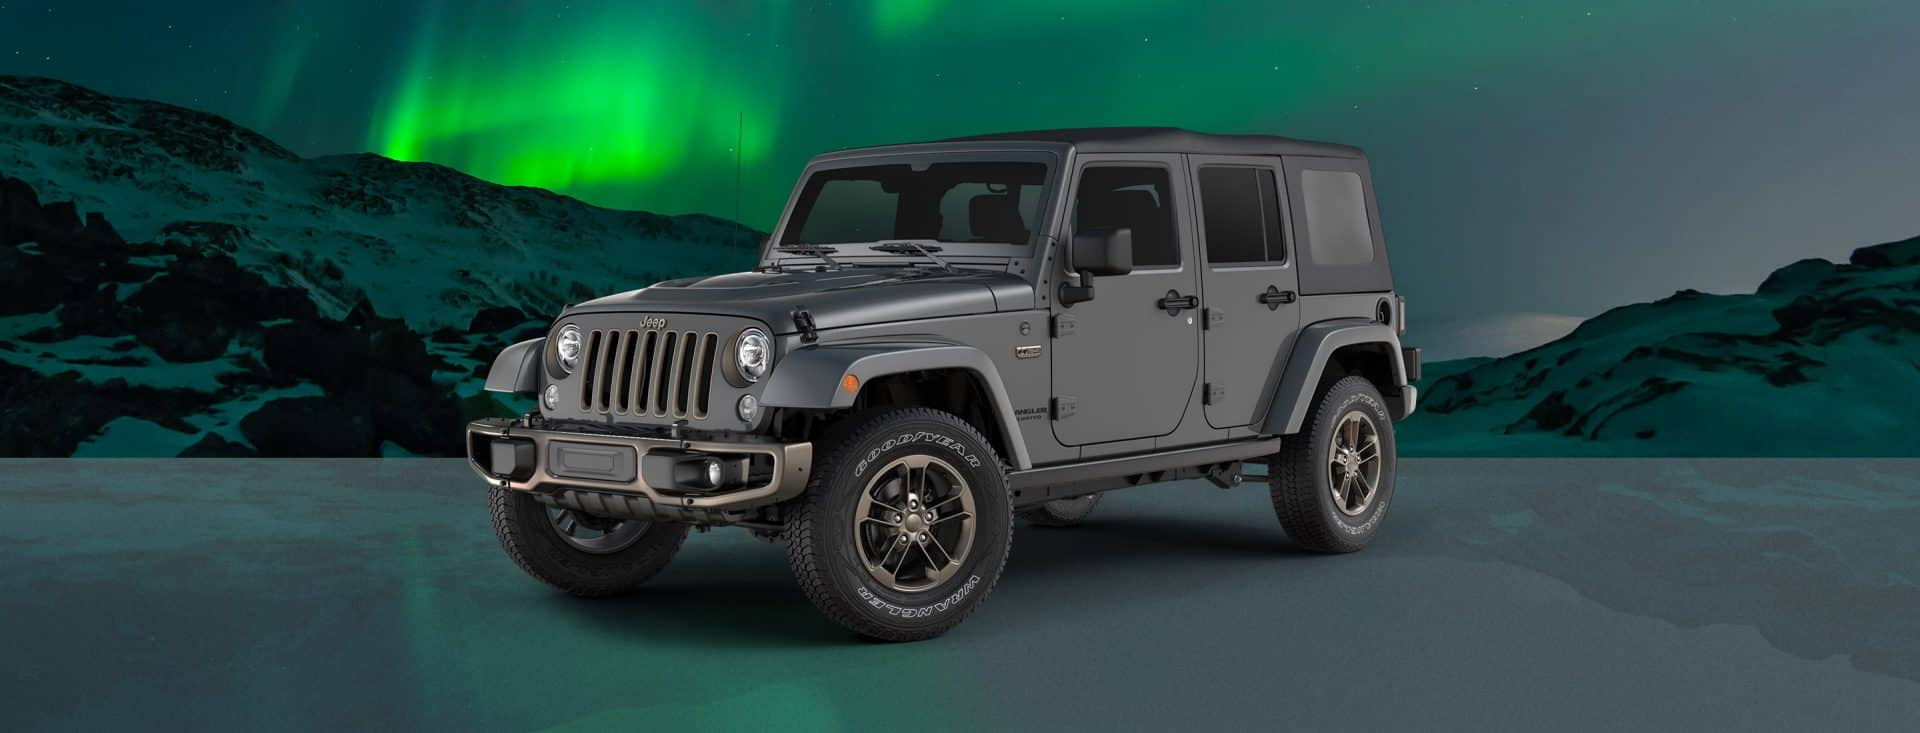 Jeep Wrangler Freedom Edition >> 2017 Jeep Wrangler 75th Anniversary - Limited Edition